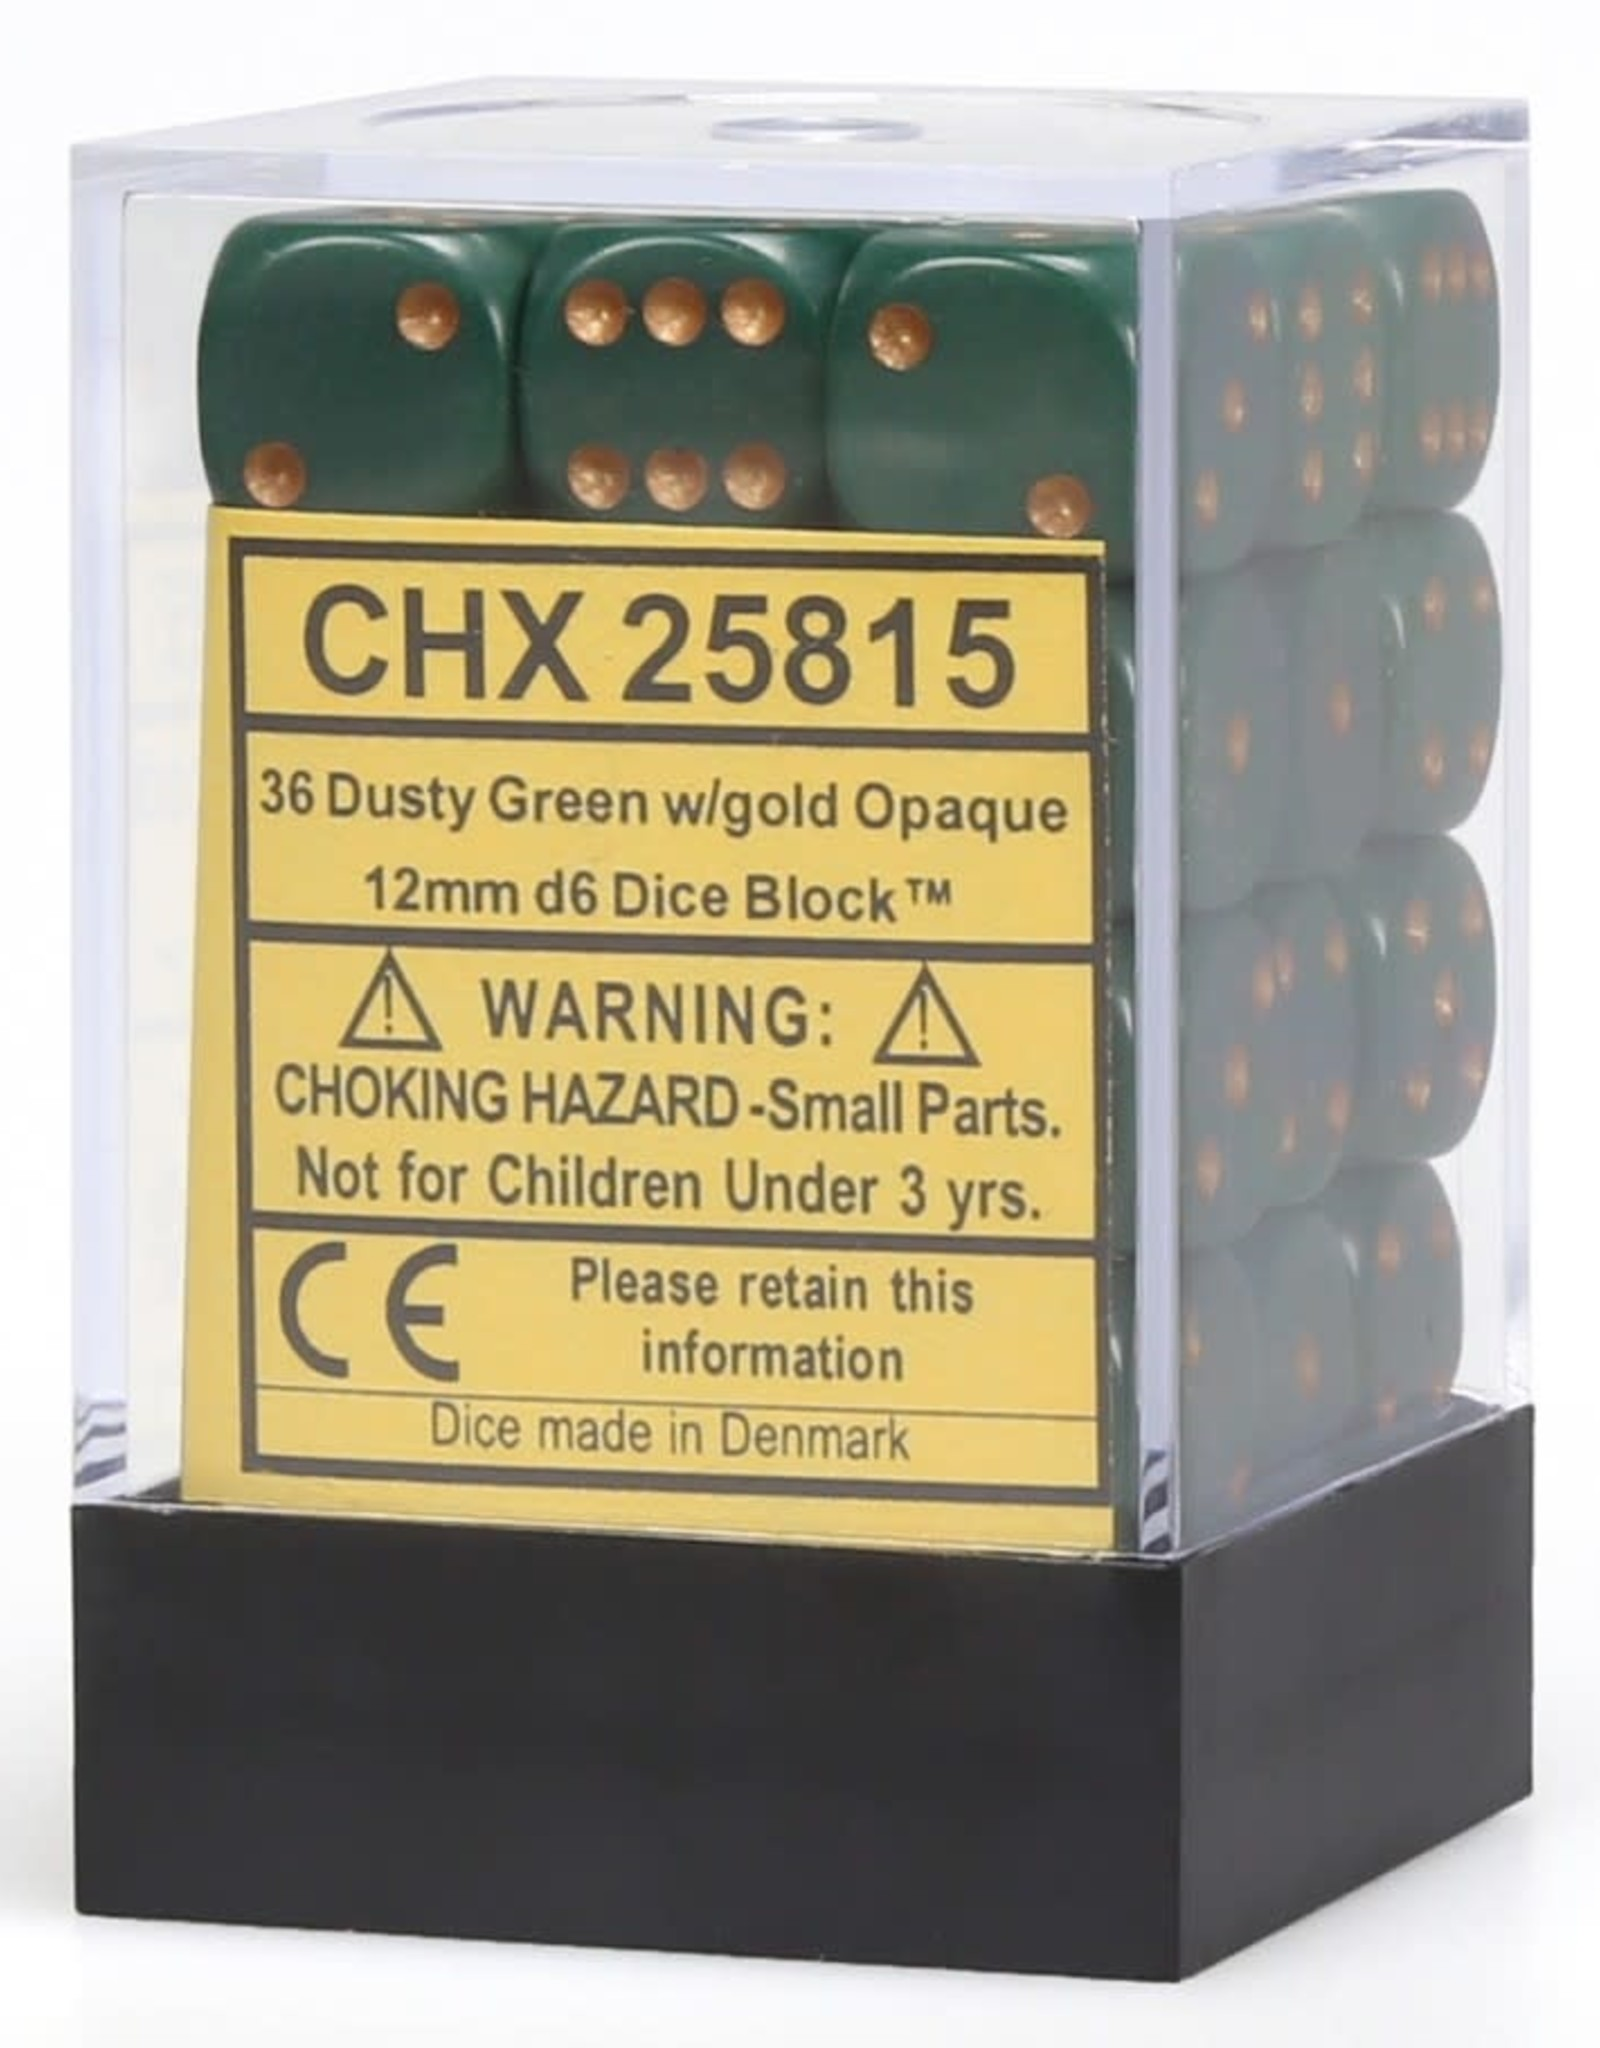 Chessex Dice Block D6 12mm 36ct. - Dusty Green/Copper